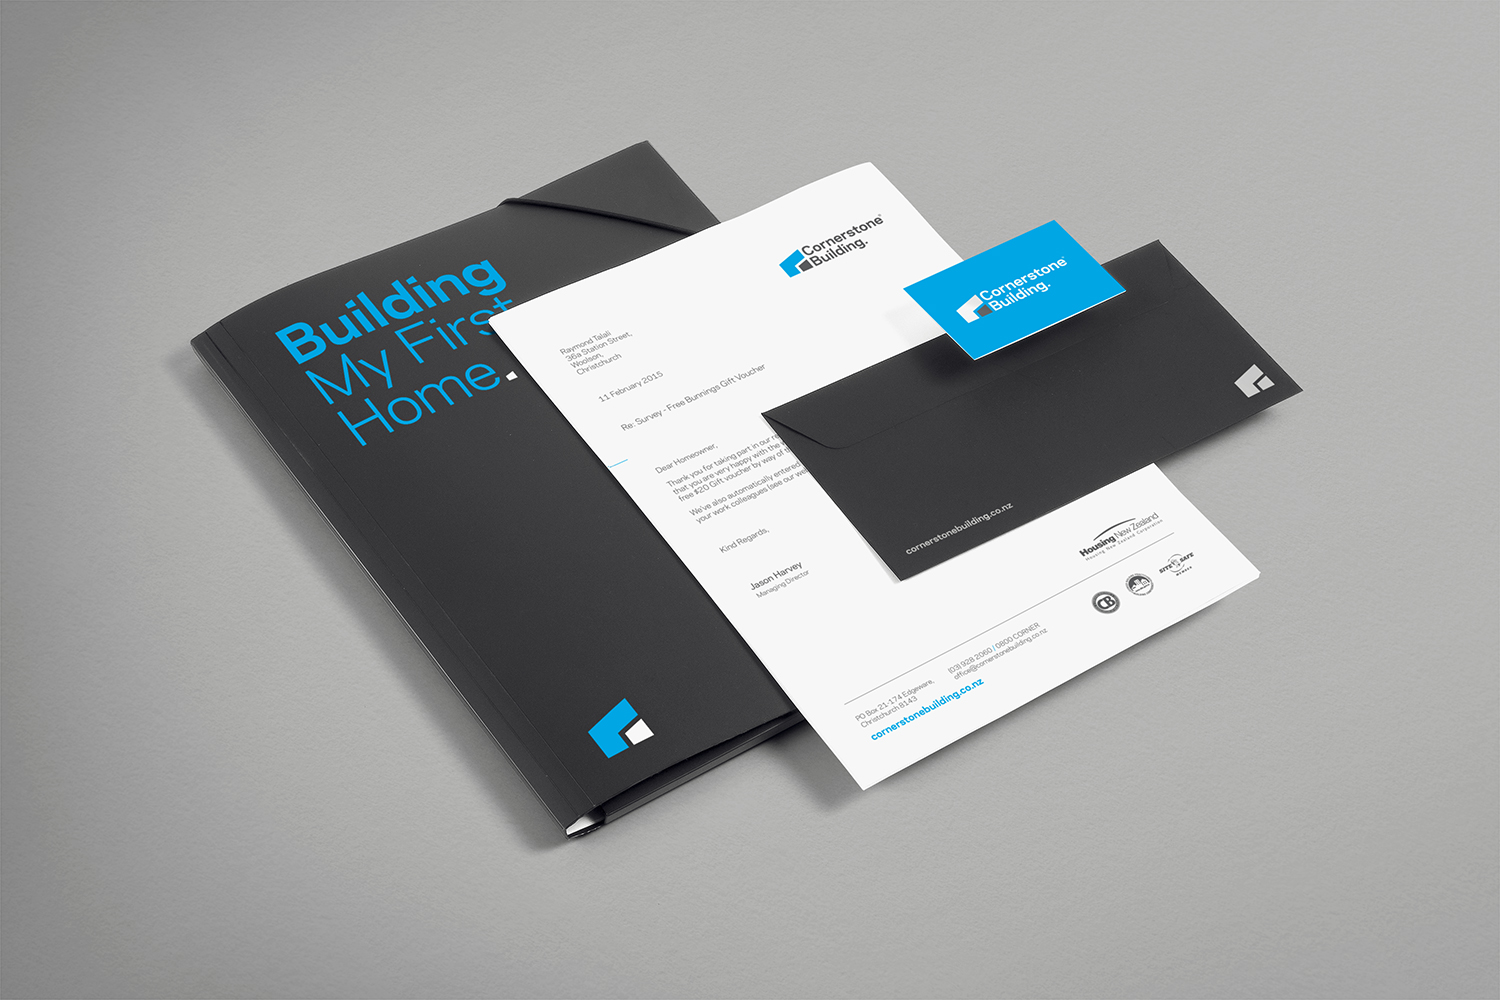 Cornerstone Building brand identity and collateral designed by ThompsonCo.